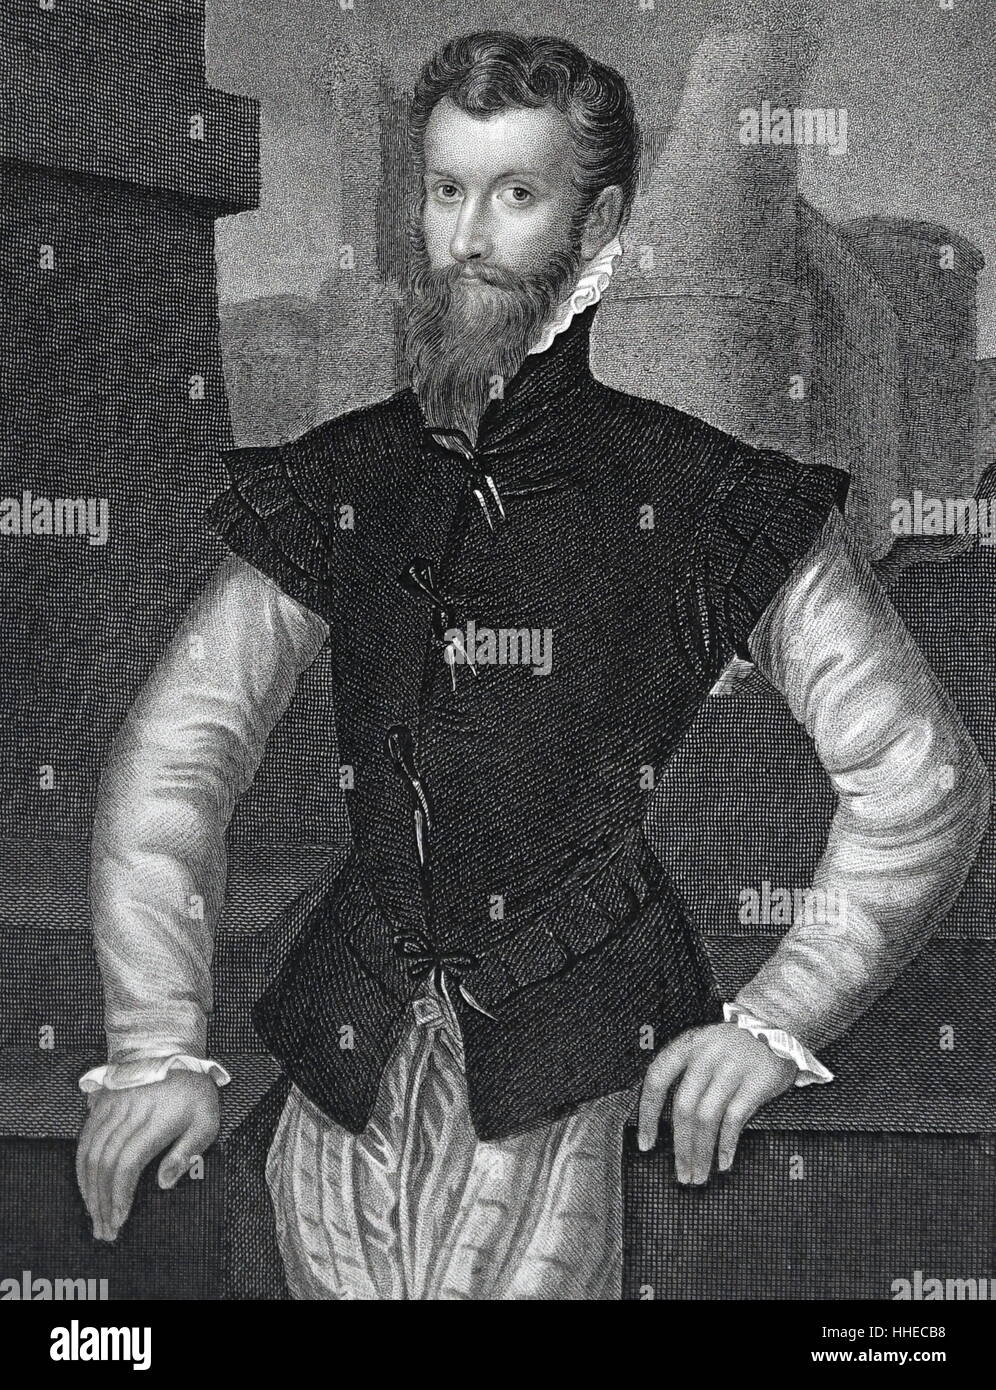 Edward Courtenay, Earl of Devonshire (15267-1556); English courtier - Stock Image